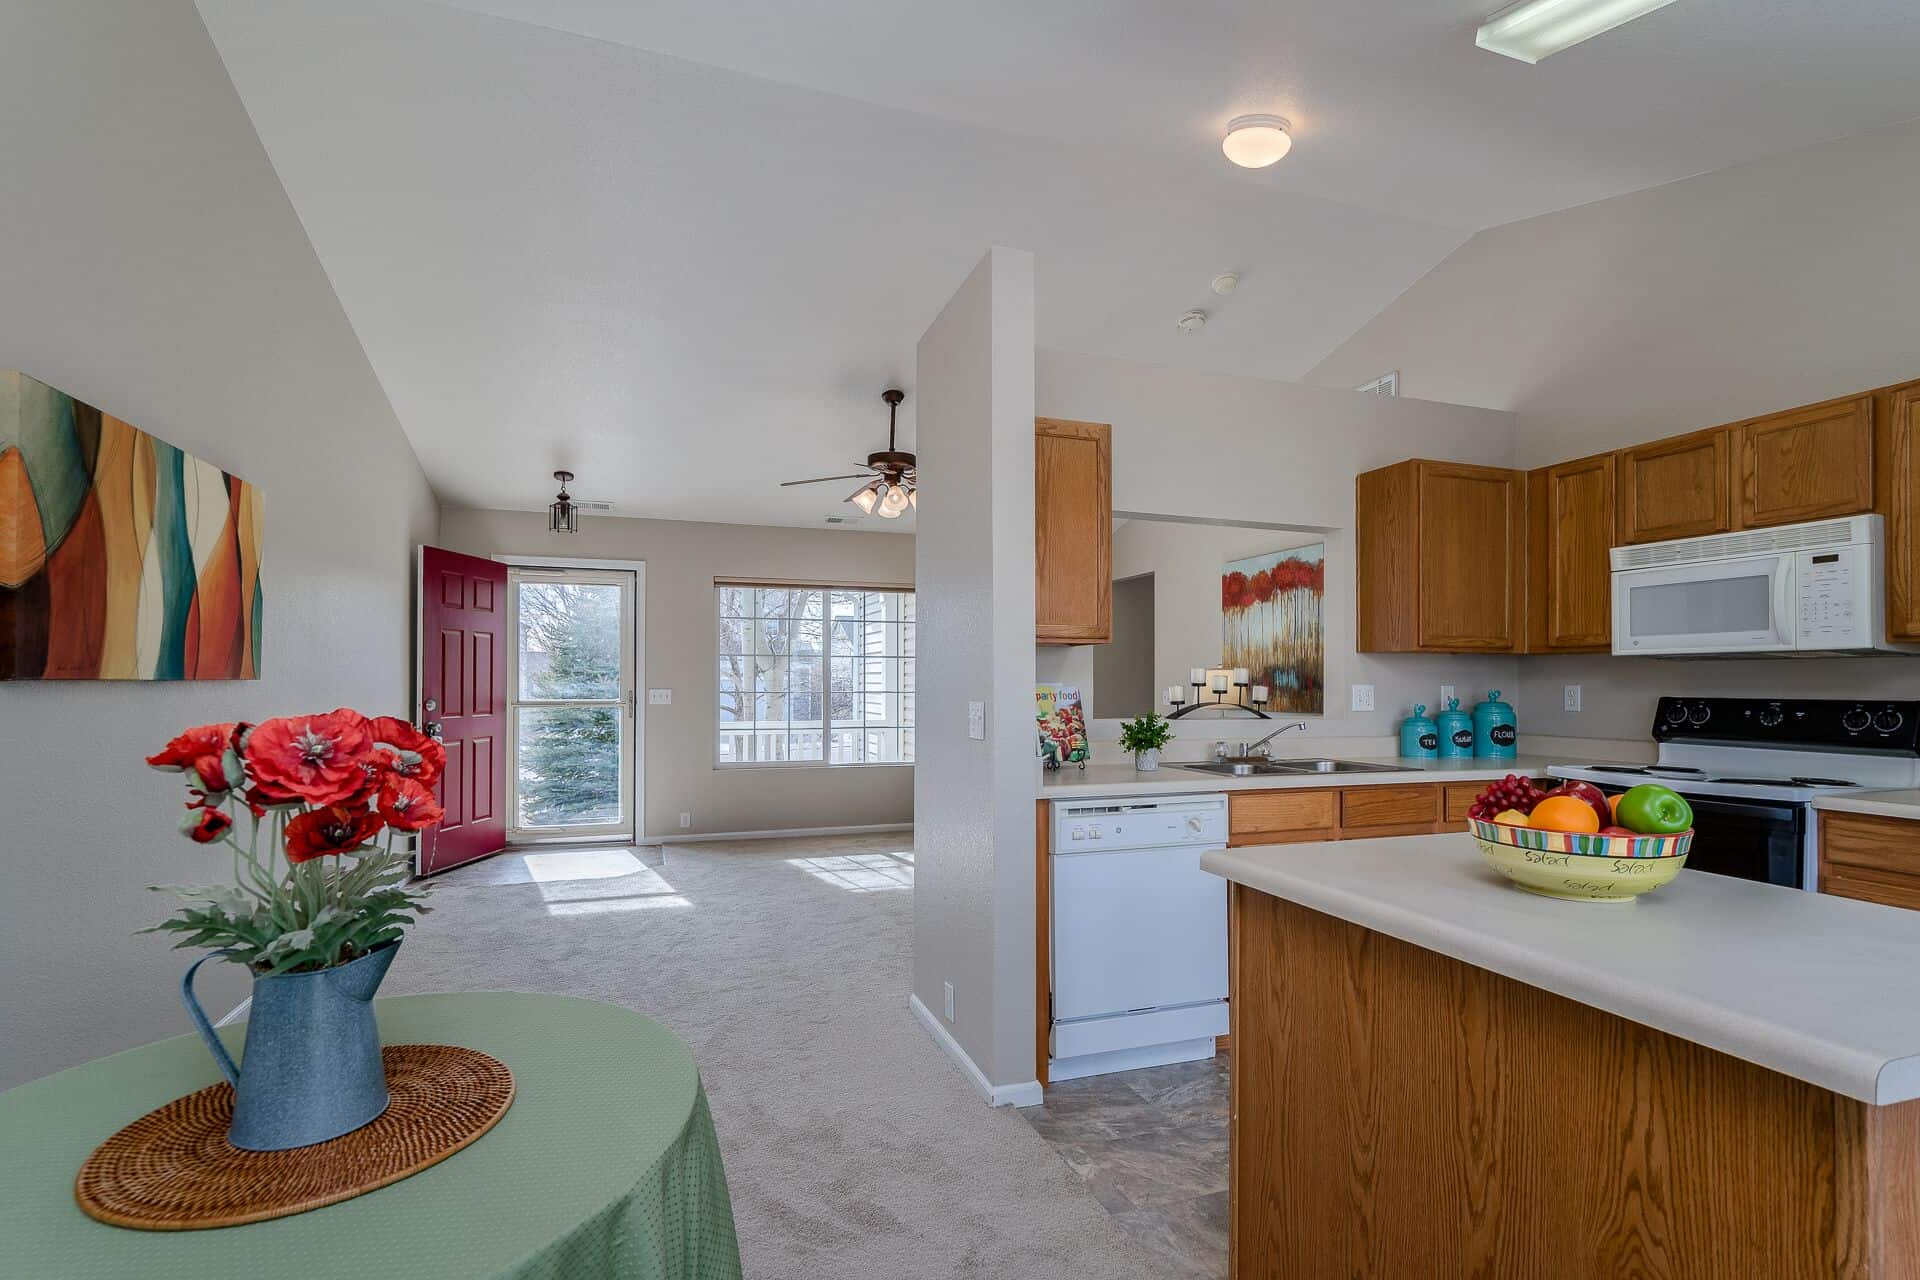 Kitchen, Dining Area, Living Room